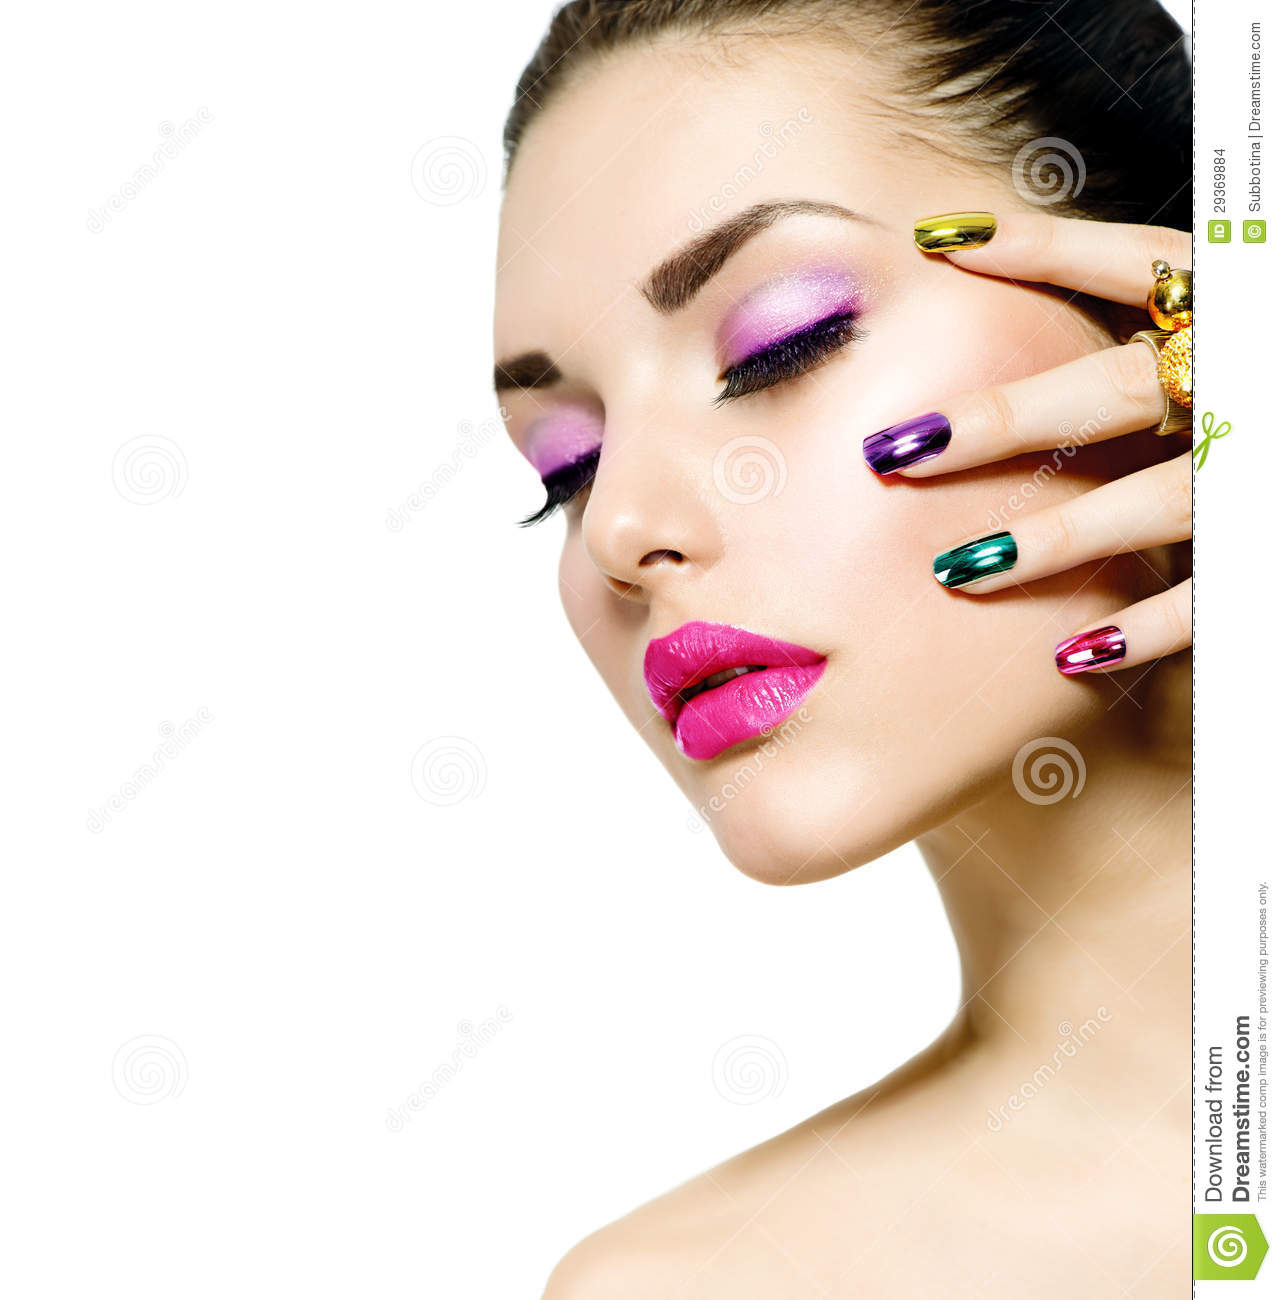 All 4u Hd Wallpaper Free Download Beautiful Nail Art: Fashion Beauty. Manicure And Makeup Stock Photo